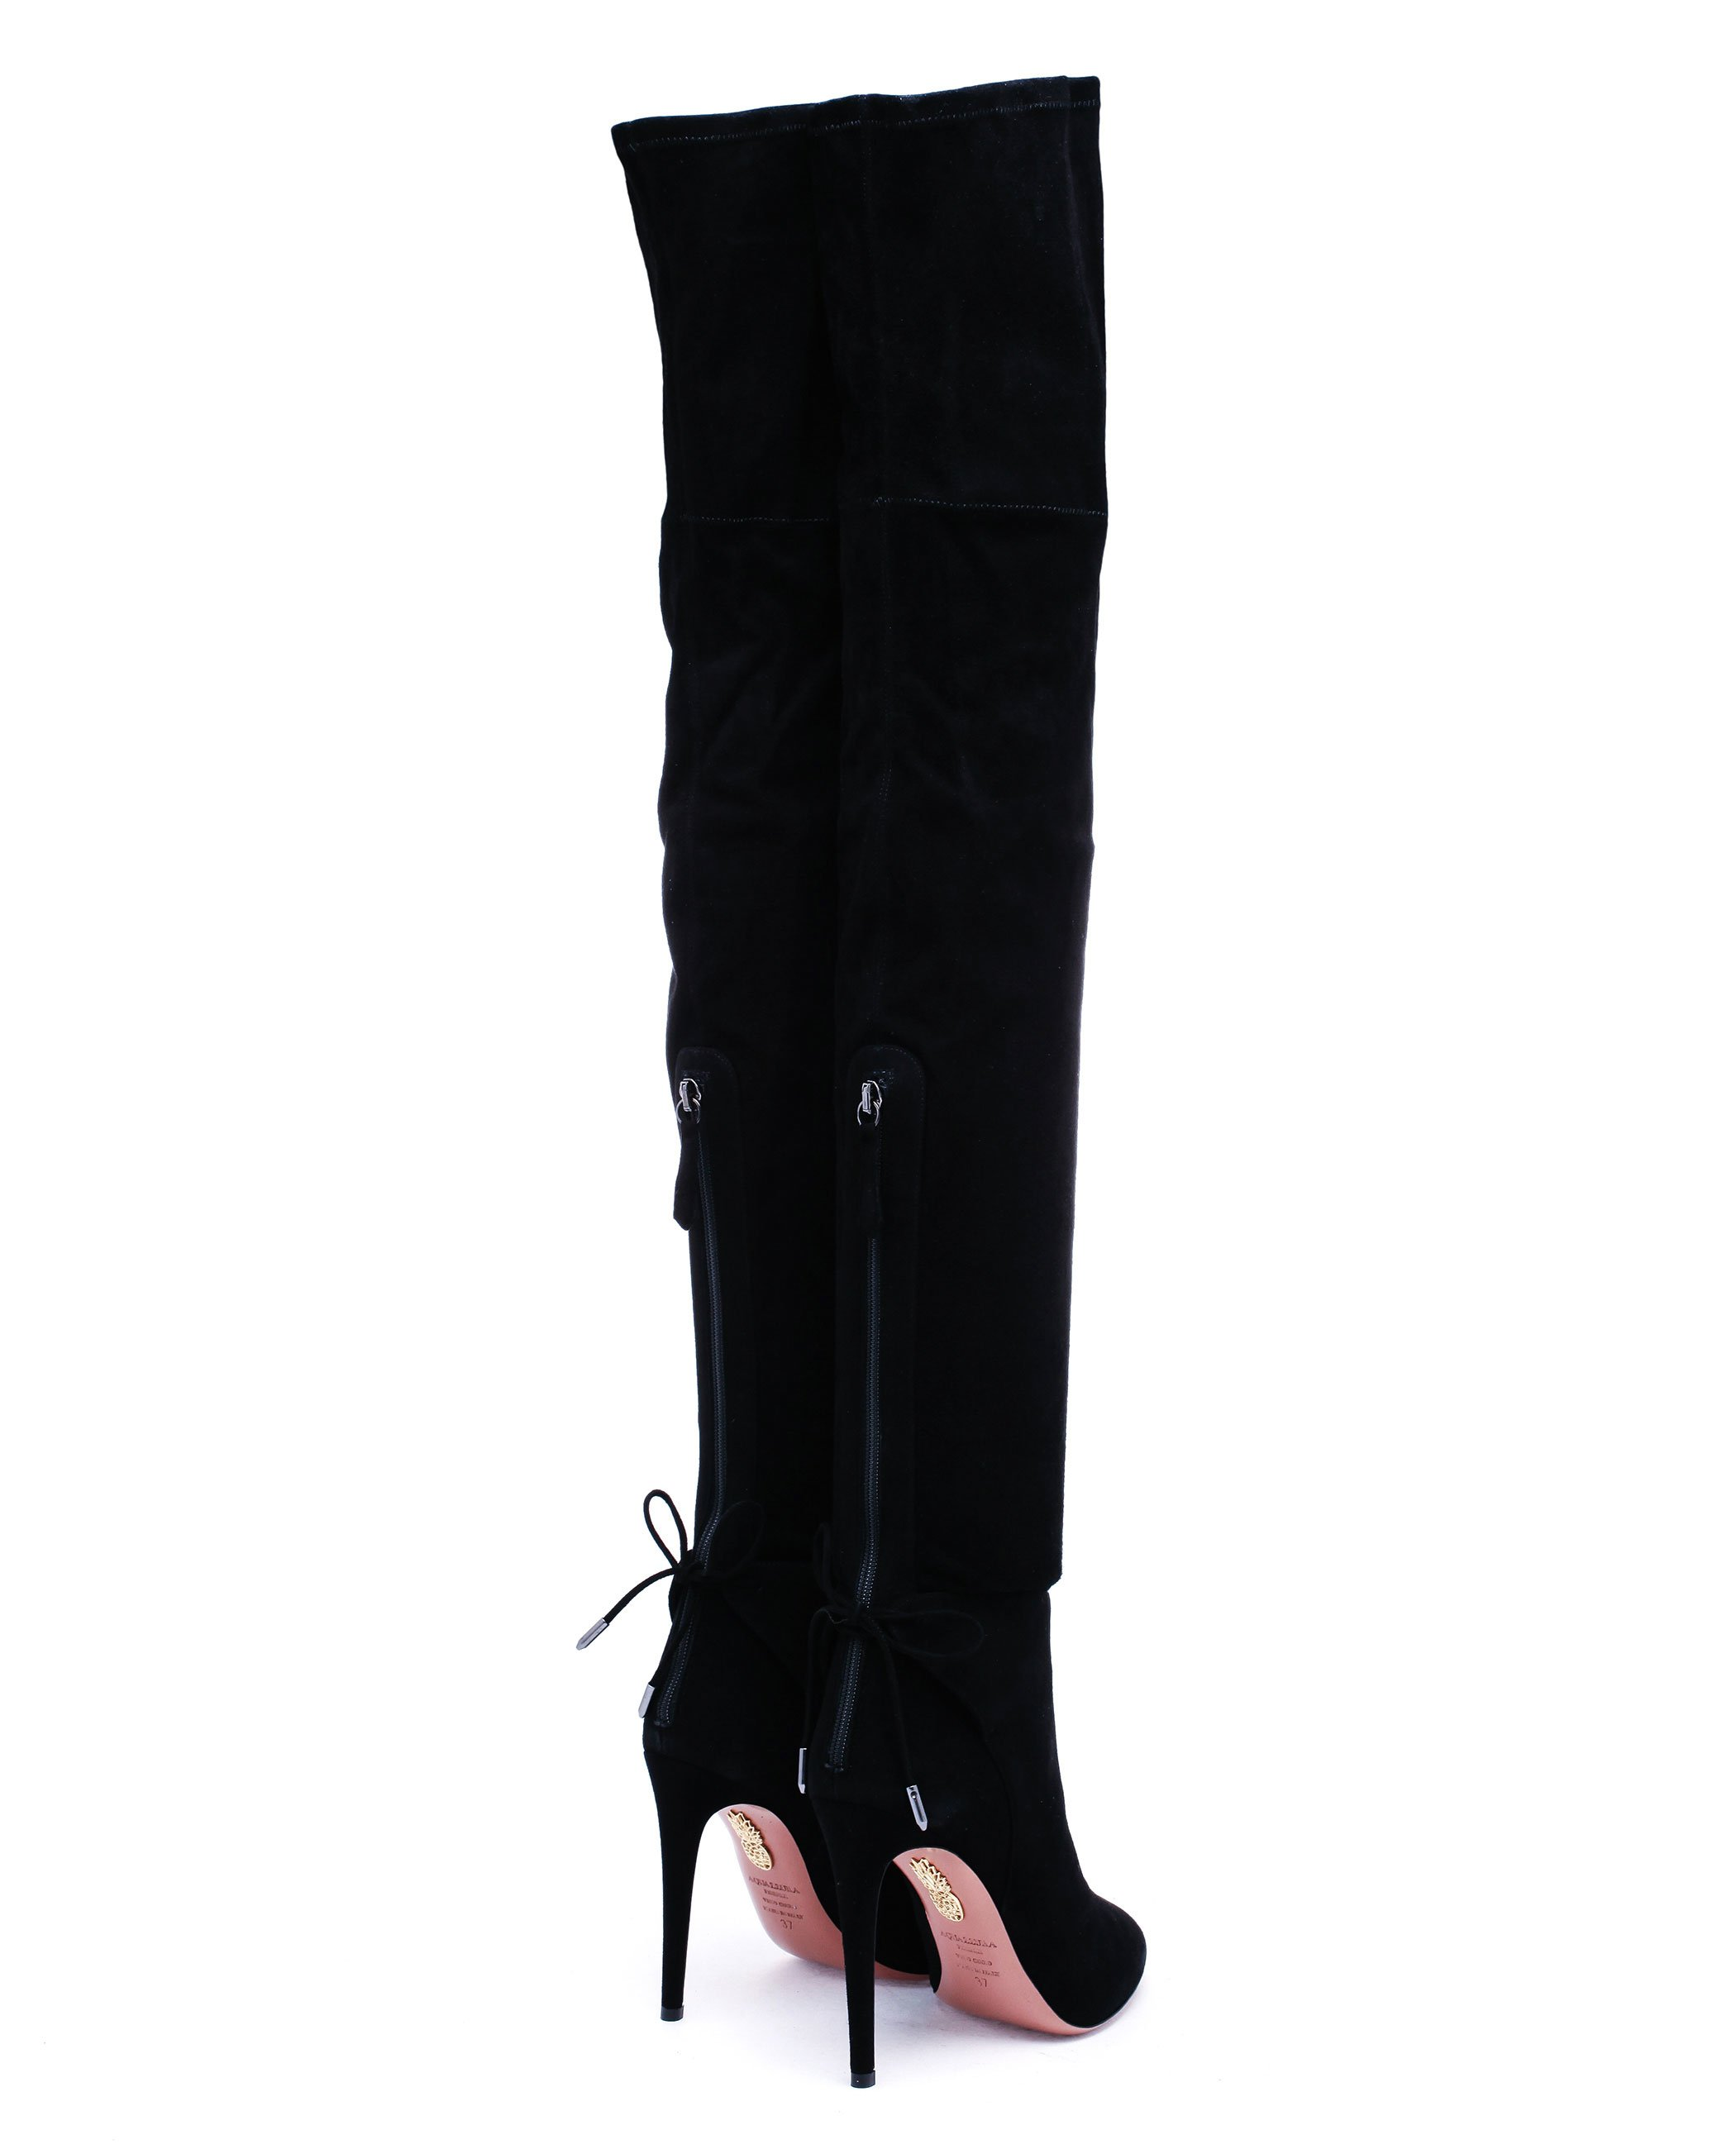 8256cf77a0c Aquazzura Giselle Cuissard Thigh High Suede Boots in Black - Lyst